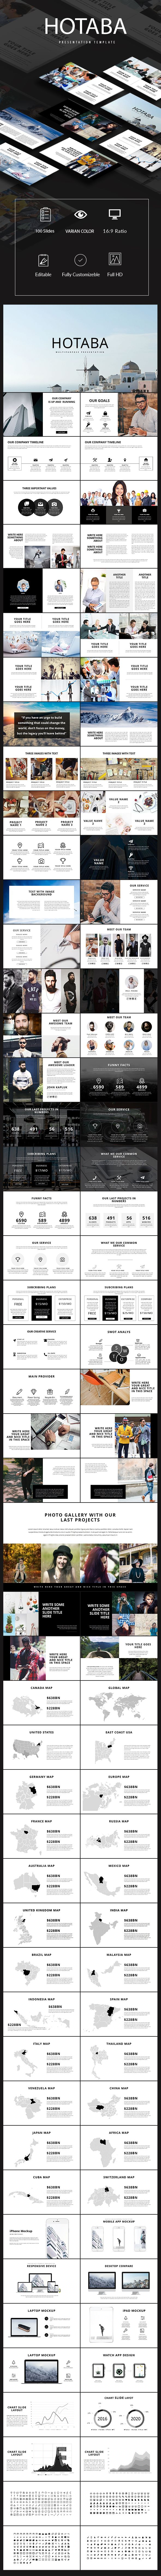 Hotaba Presentation Template (PowerPoint Templates)